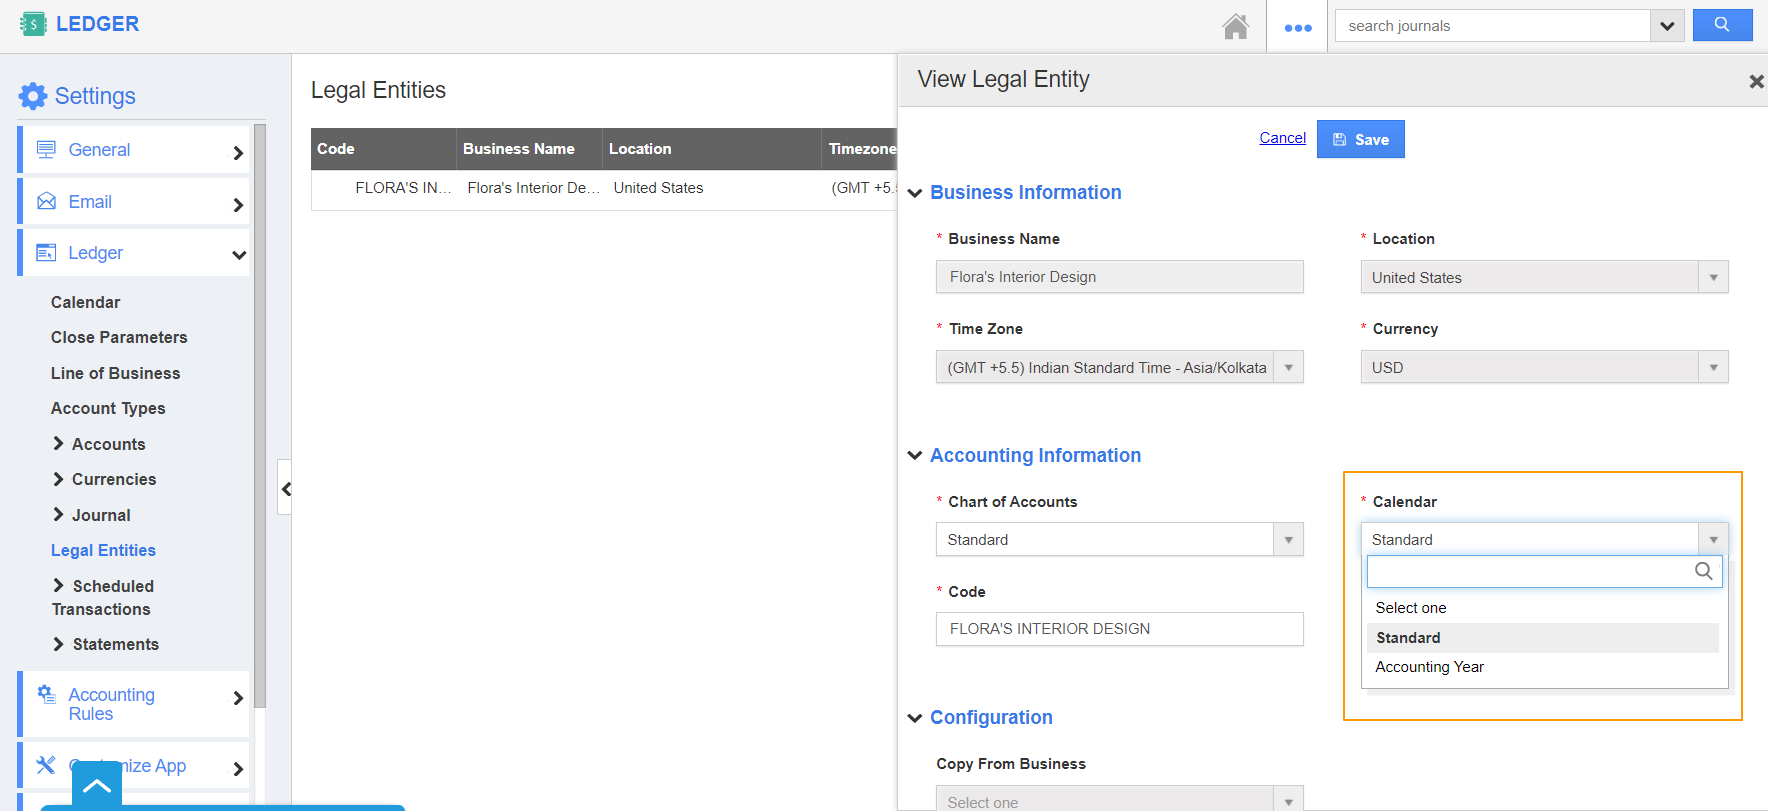 View Legal Entities